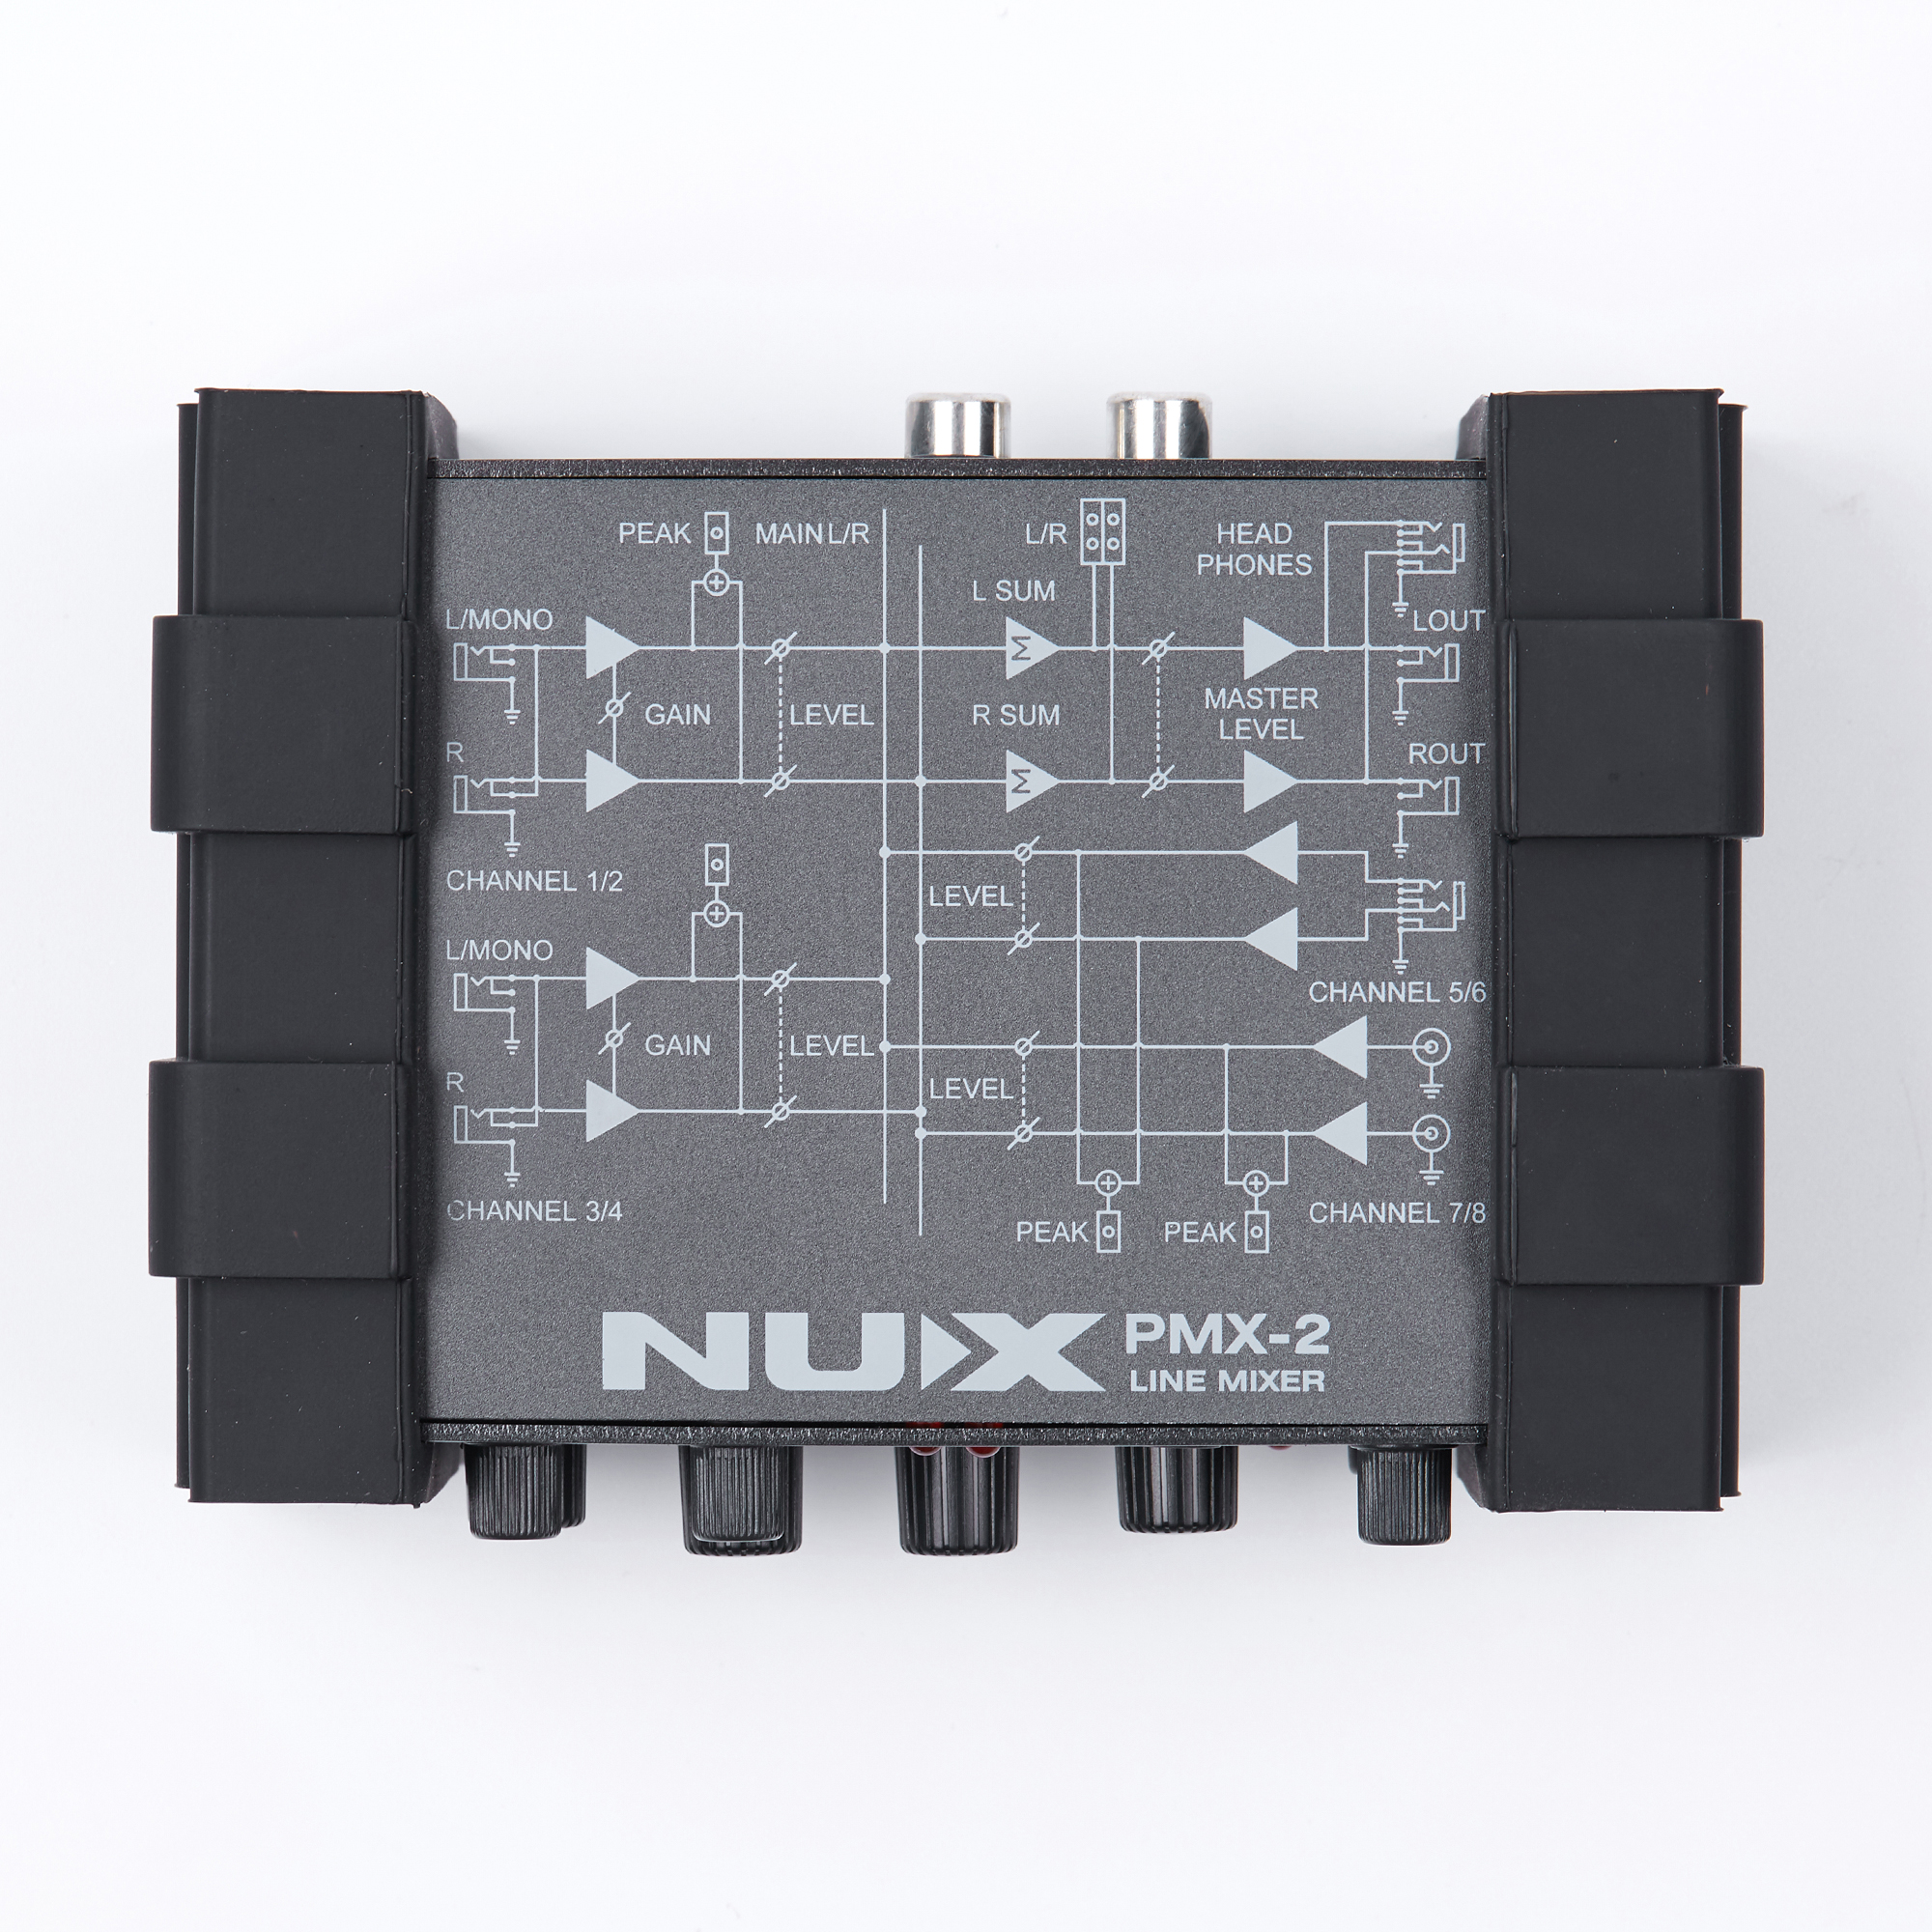 Gain Control 8 Inputs and 2 Outputs NUX PMX-2 Multi-Channel Mini Mixer 30 Musical Instruments Accessories for Guitar Bass Player принтер hp color laserjet enterprise m652dn